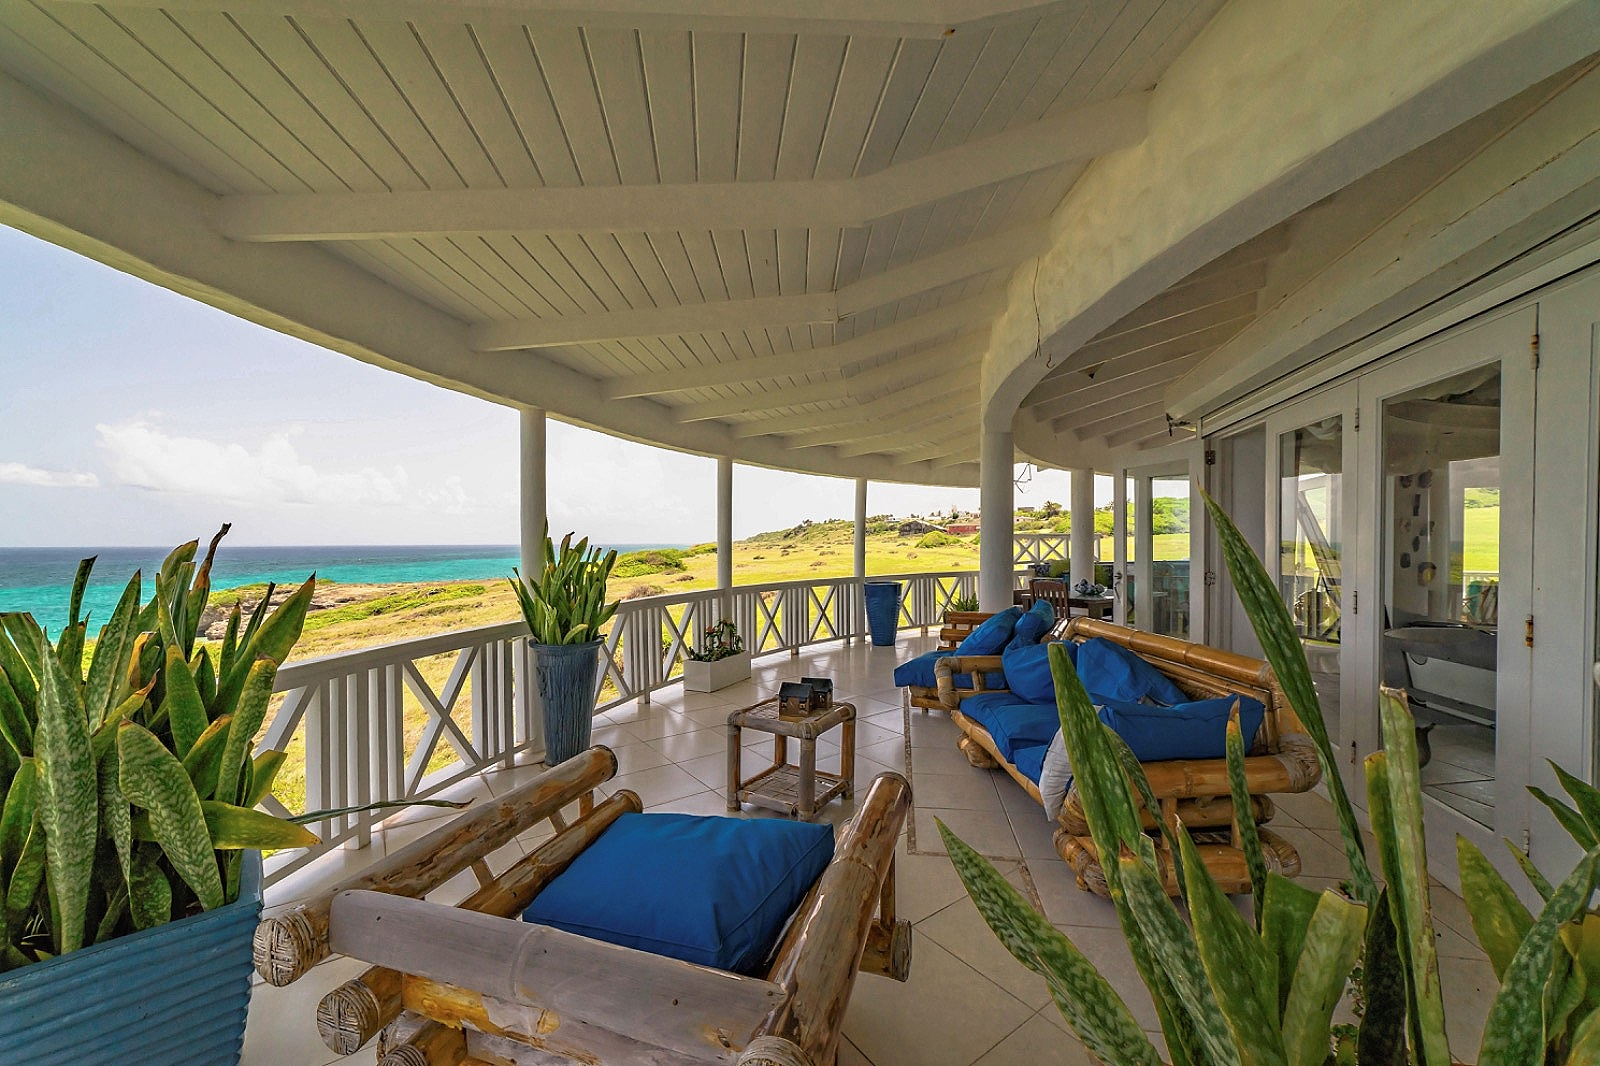 $890,000 3.0 BD | 3.0 BA | 4,600 SF  St. Philips  81 Green Point,   Barbados